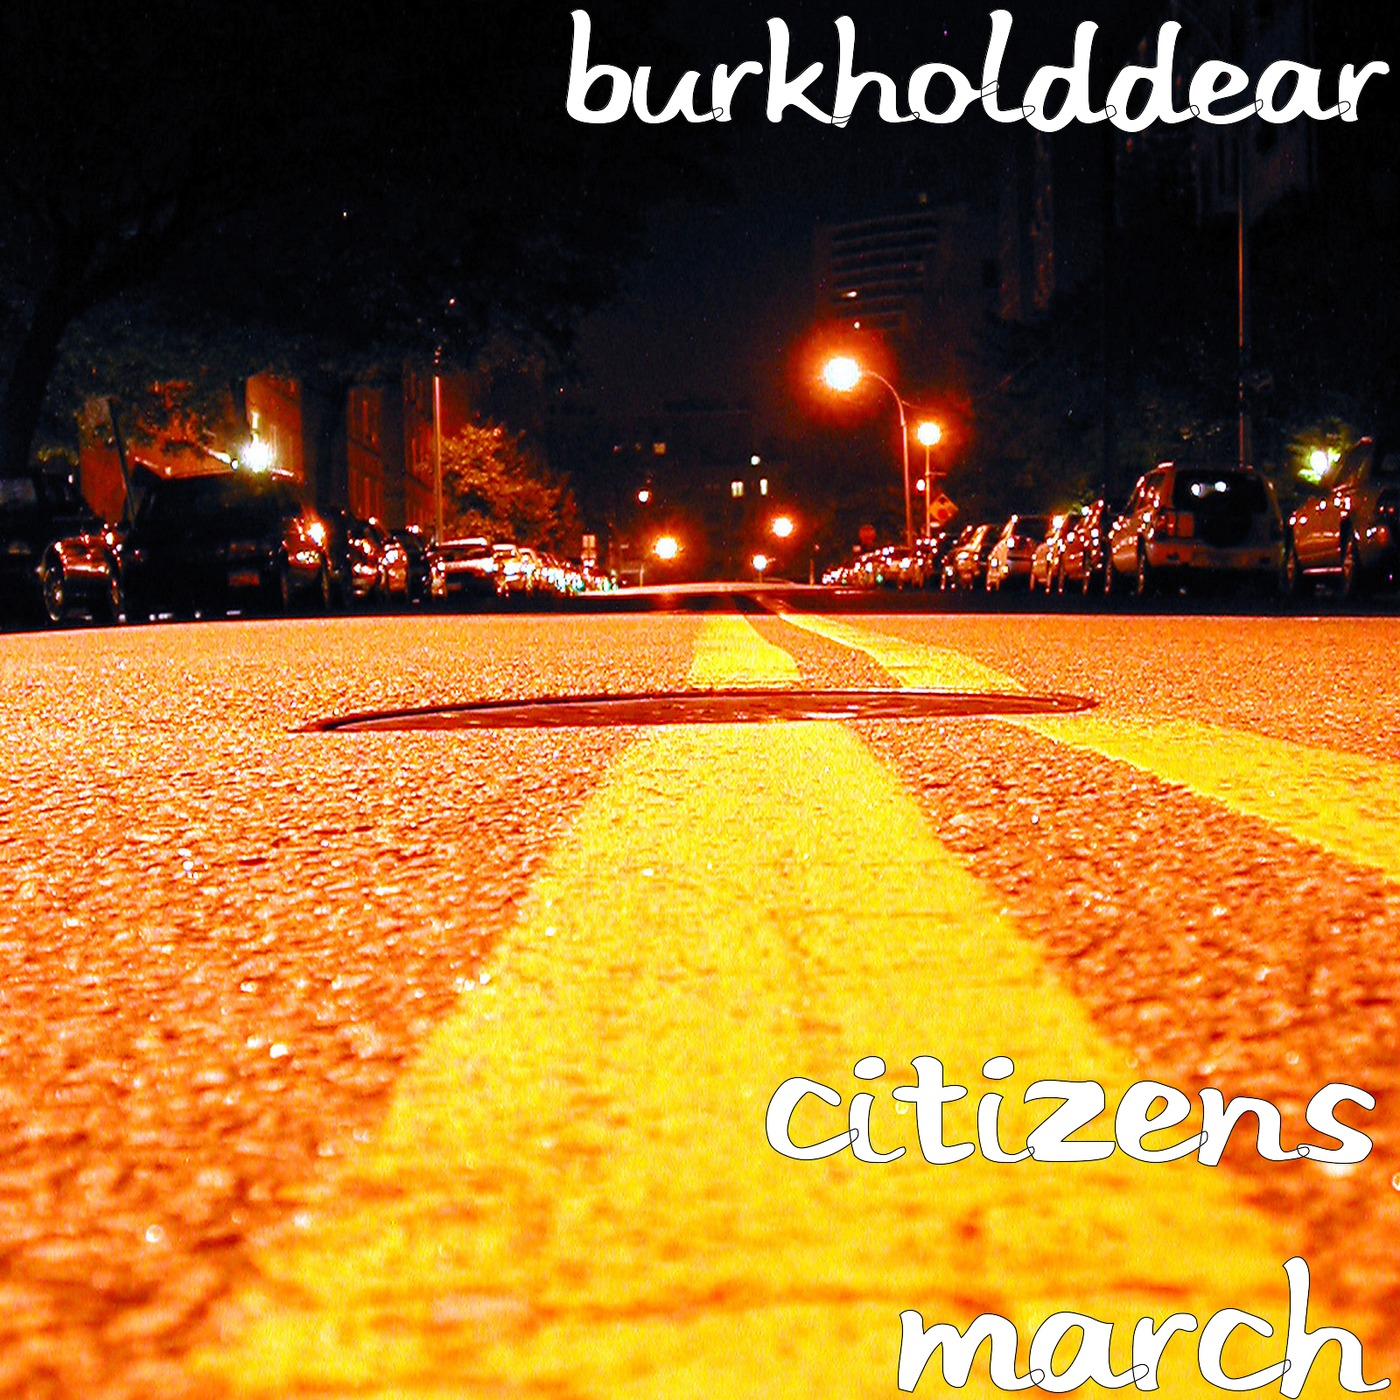 Citizens March